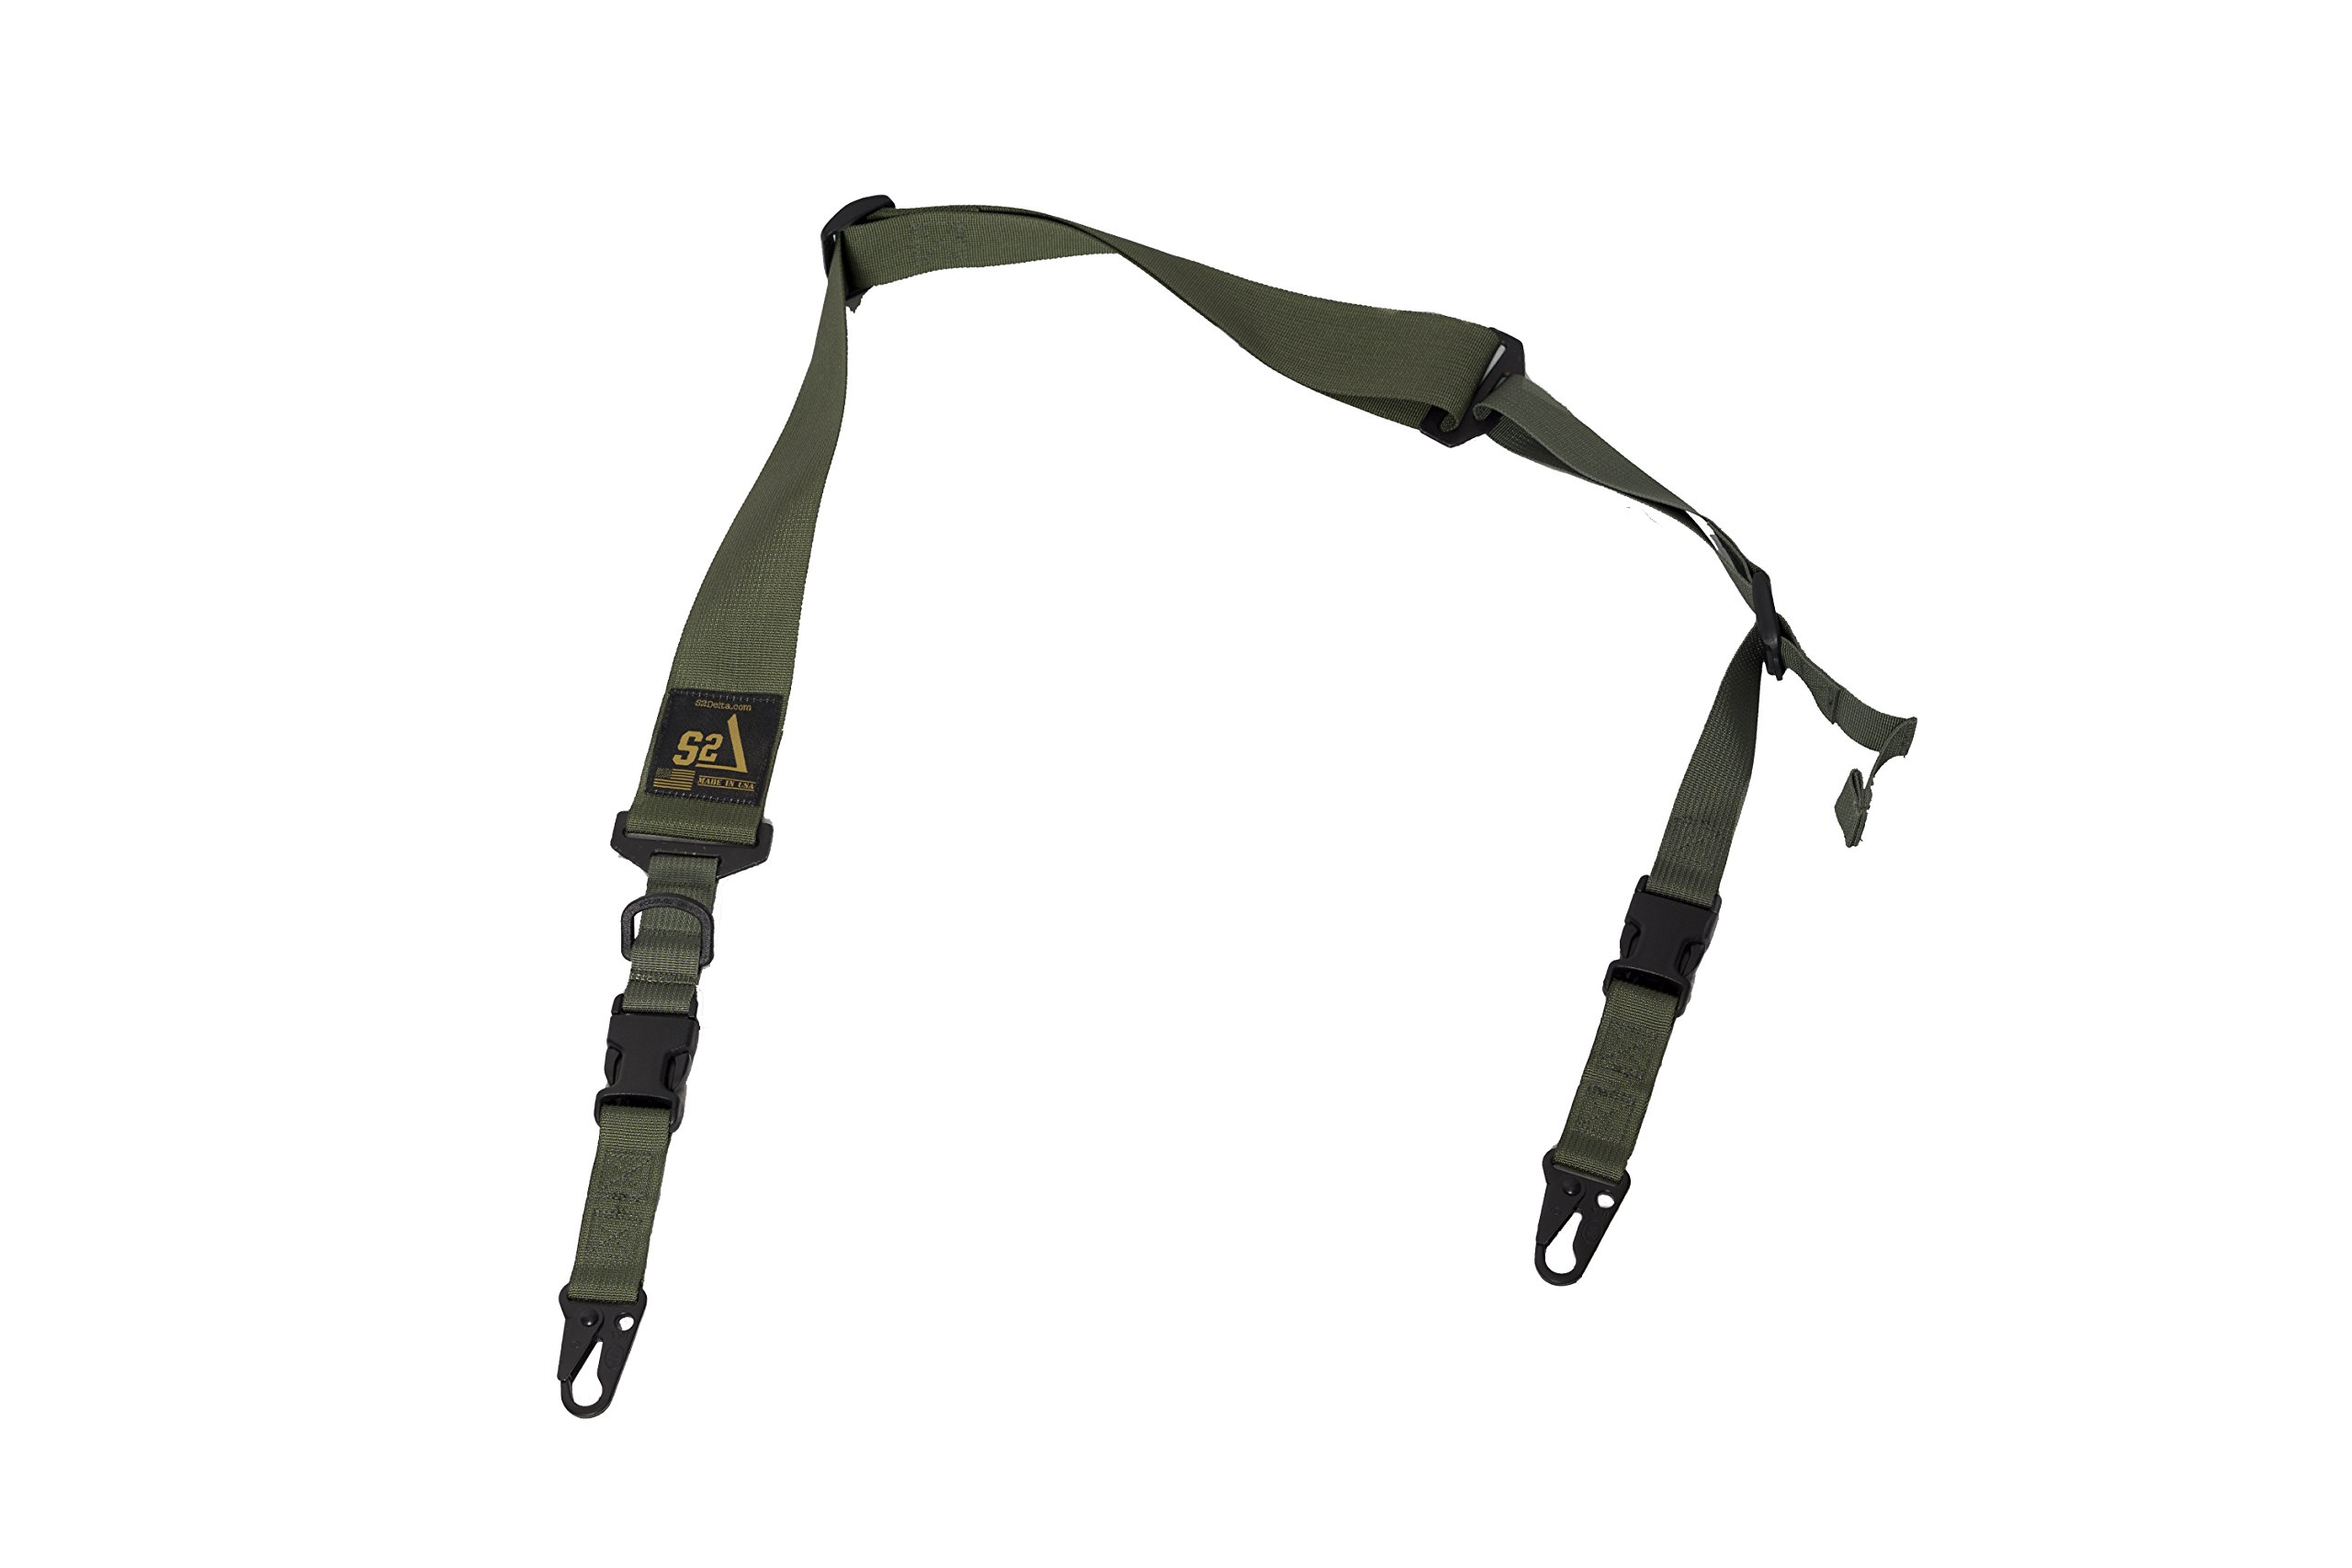 S2Delta - USA Made 2 Point Rifle Sling, Quick Adjustment, Modular Attachment Connections, Comfortable 2'' Wide Shoulder Strap to 1'' Attachment Ends (Green with C.L.A.S.H. Hooks) by S2Delta